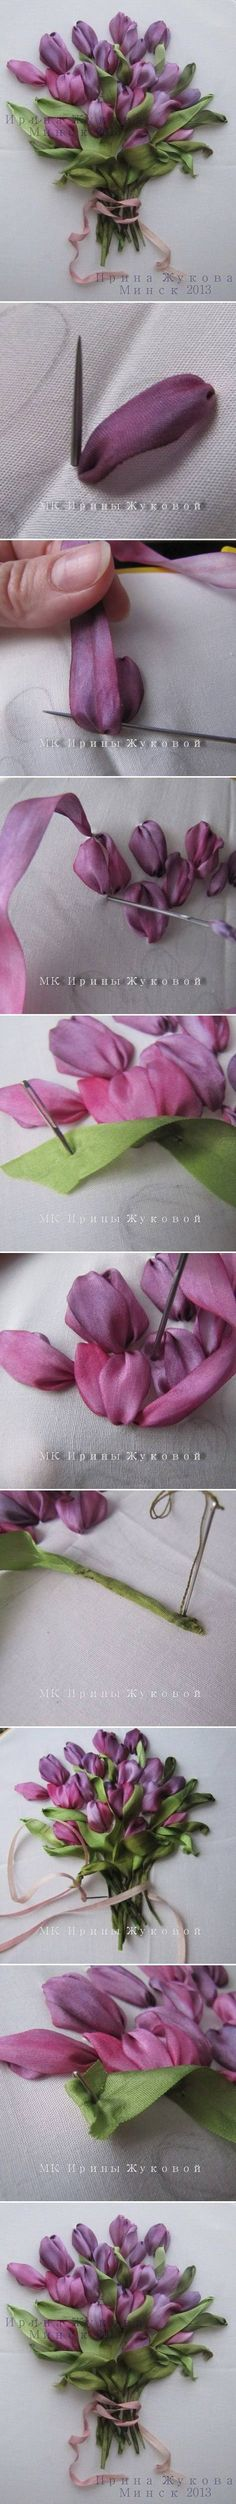 DIY Embroidery Ribbon Flower DIY Projects | UsefulDIY.com: If this works, it's sensational. If not, it would still be a pretty funny pinterest-fail.                                                                                                                                                                                 Plus